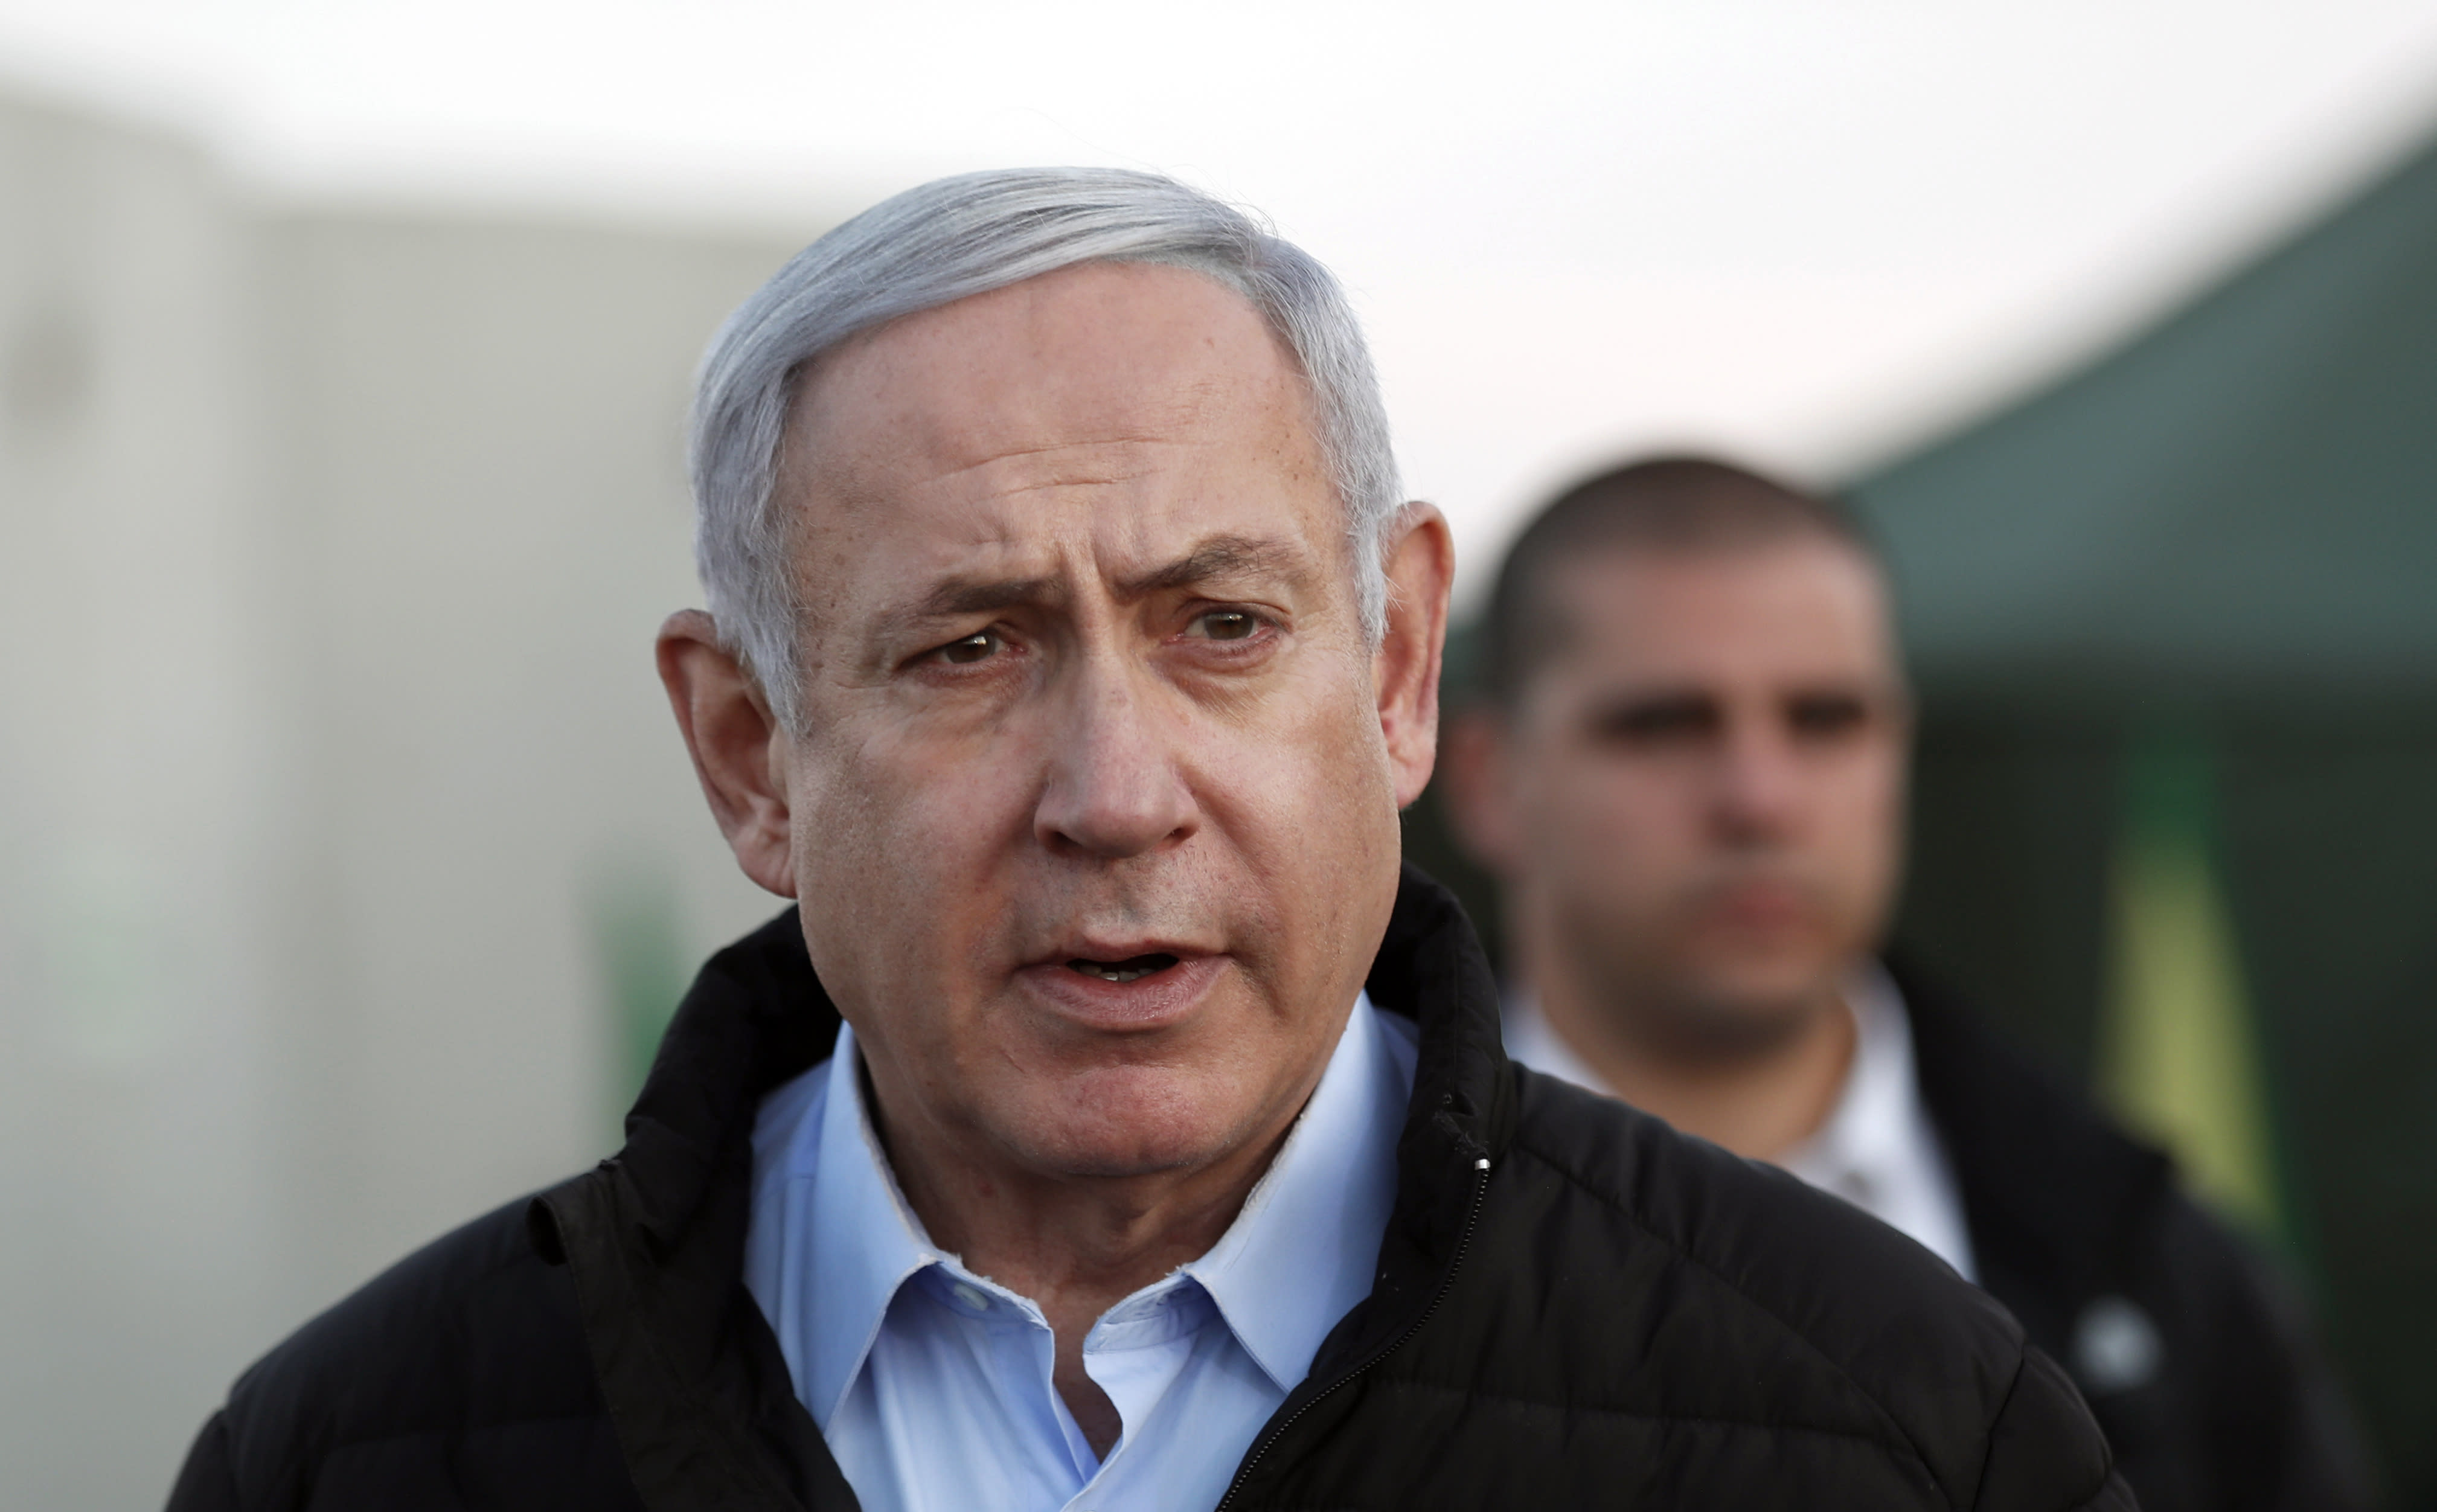 FILE - in this Nov. 24, 2019 file photo, Israeli Prime Minister Benjamin Netanyahu, looks on during a visit to Israeli army base in the Golan Heights located on the Israeli-Syrian border. Barring a nearly unfathomable about face, Israel is headed Wednesday, Dec. 11 toward an unprecedented third election within a year - prolonging a political stalemate that has paralyzed government and undermined its citizens' faith in the democratic process. (AP Photo/Atef Safadi, File)